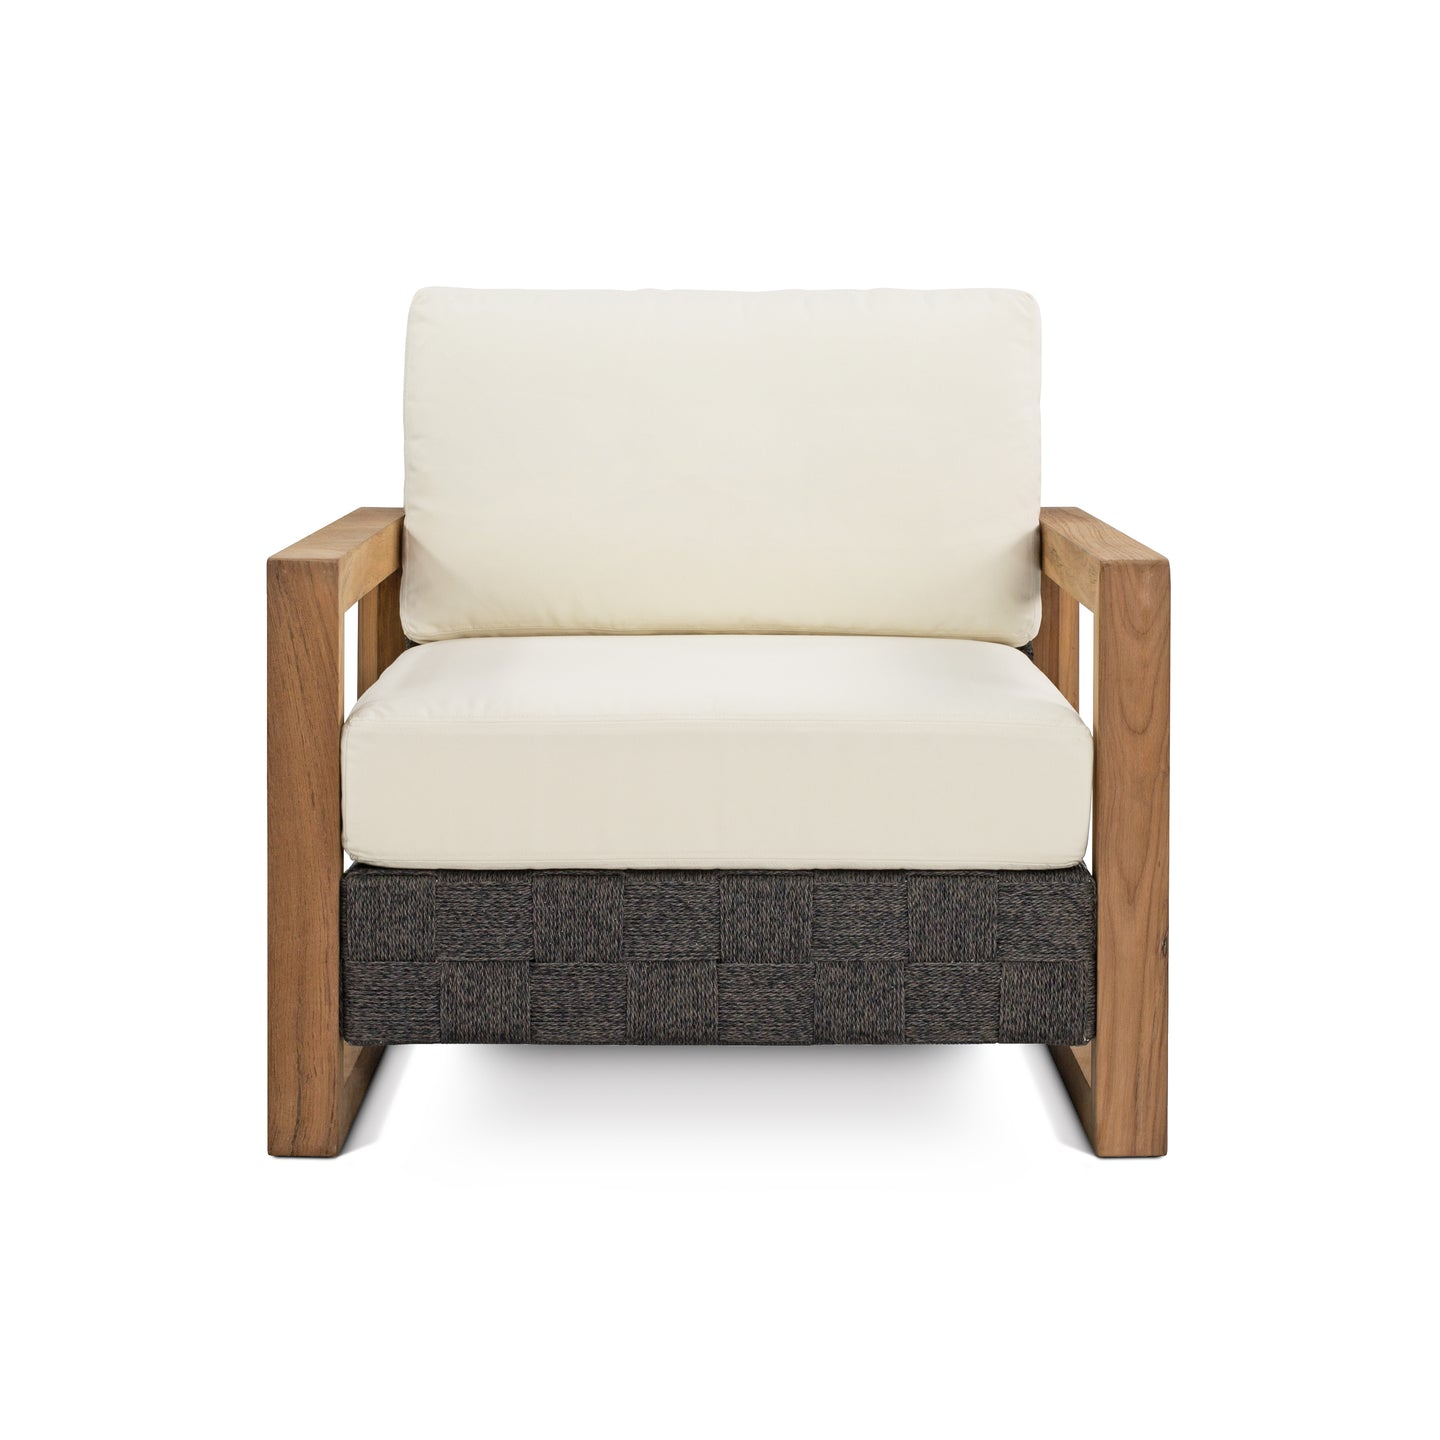 MARIN LOUNGE CHAIR